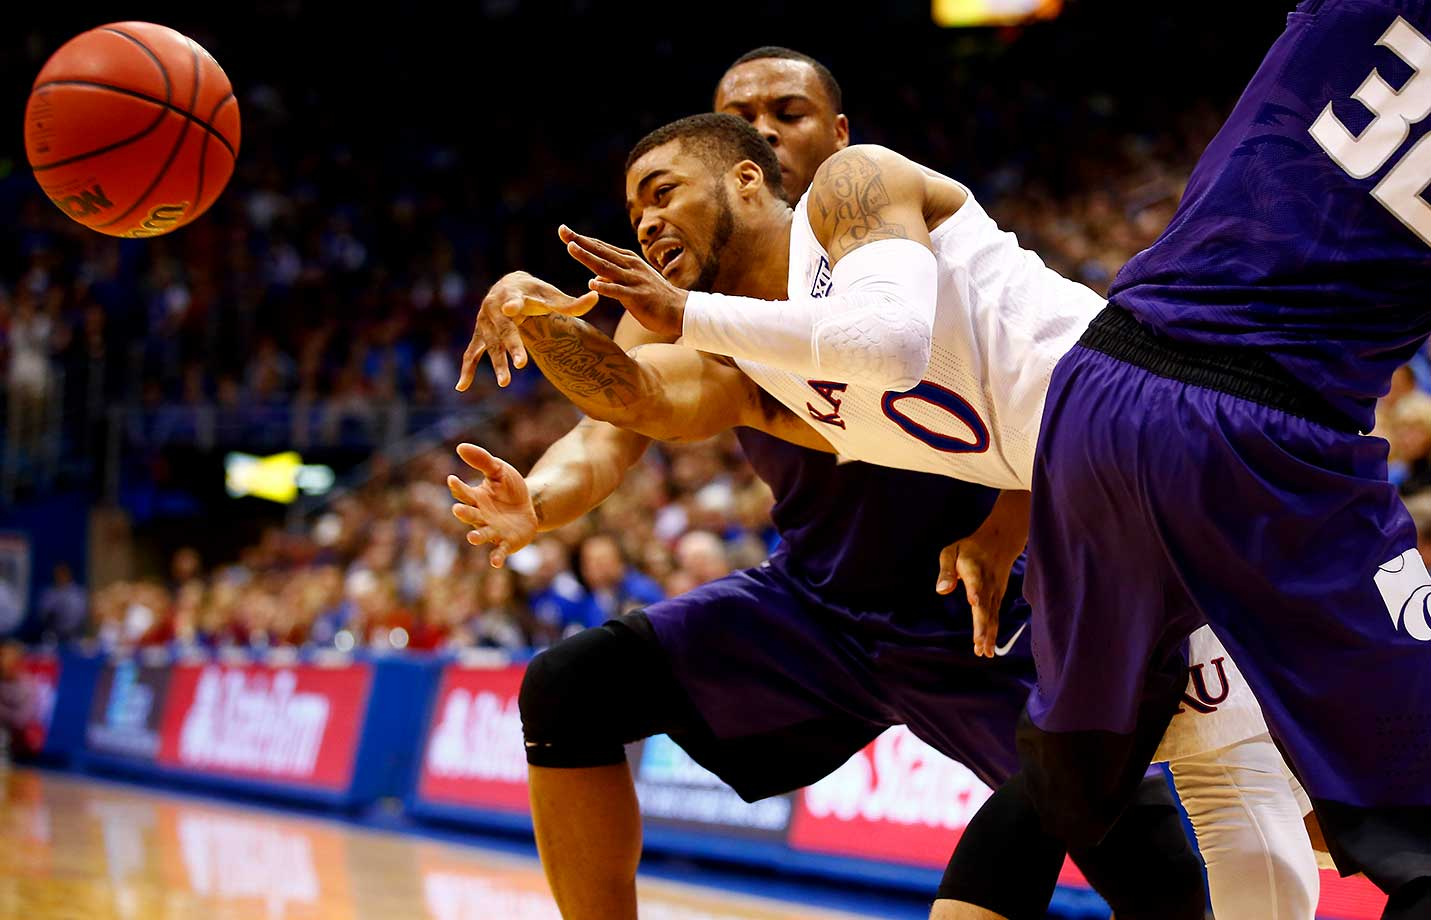 Frank Mason III of the Kansas Jayhawks passes around Dean Wade of the Kansas State Wildcats during their game at Allen Fieldhouse.